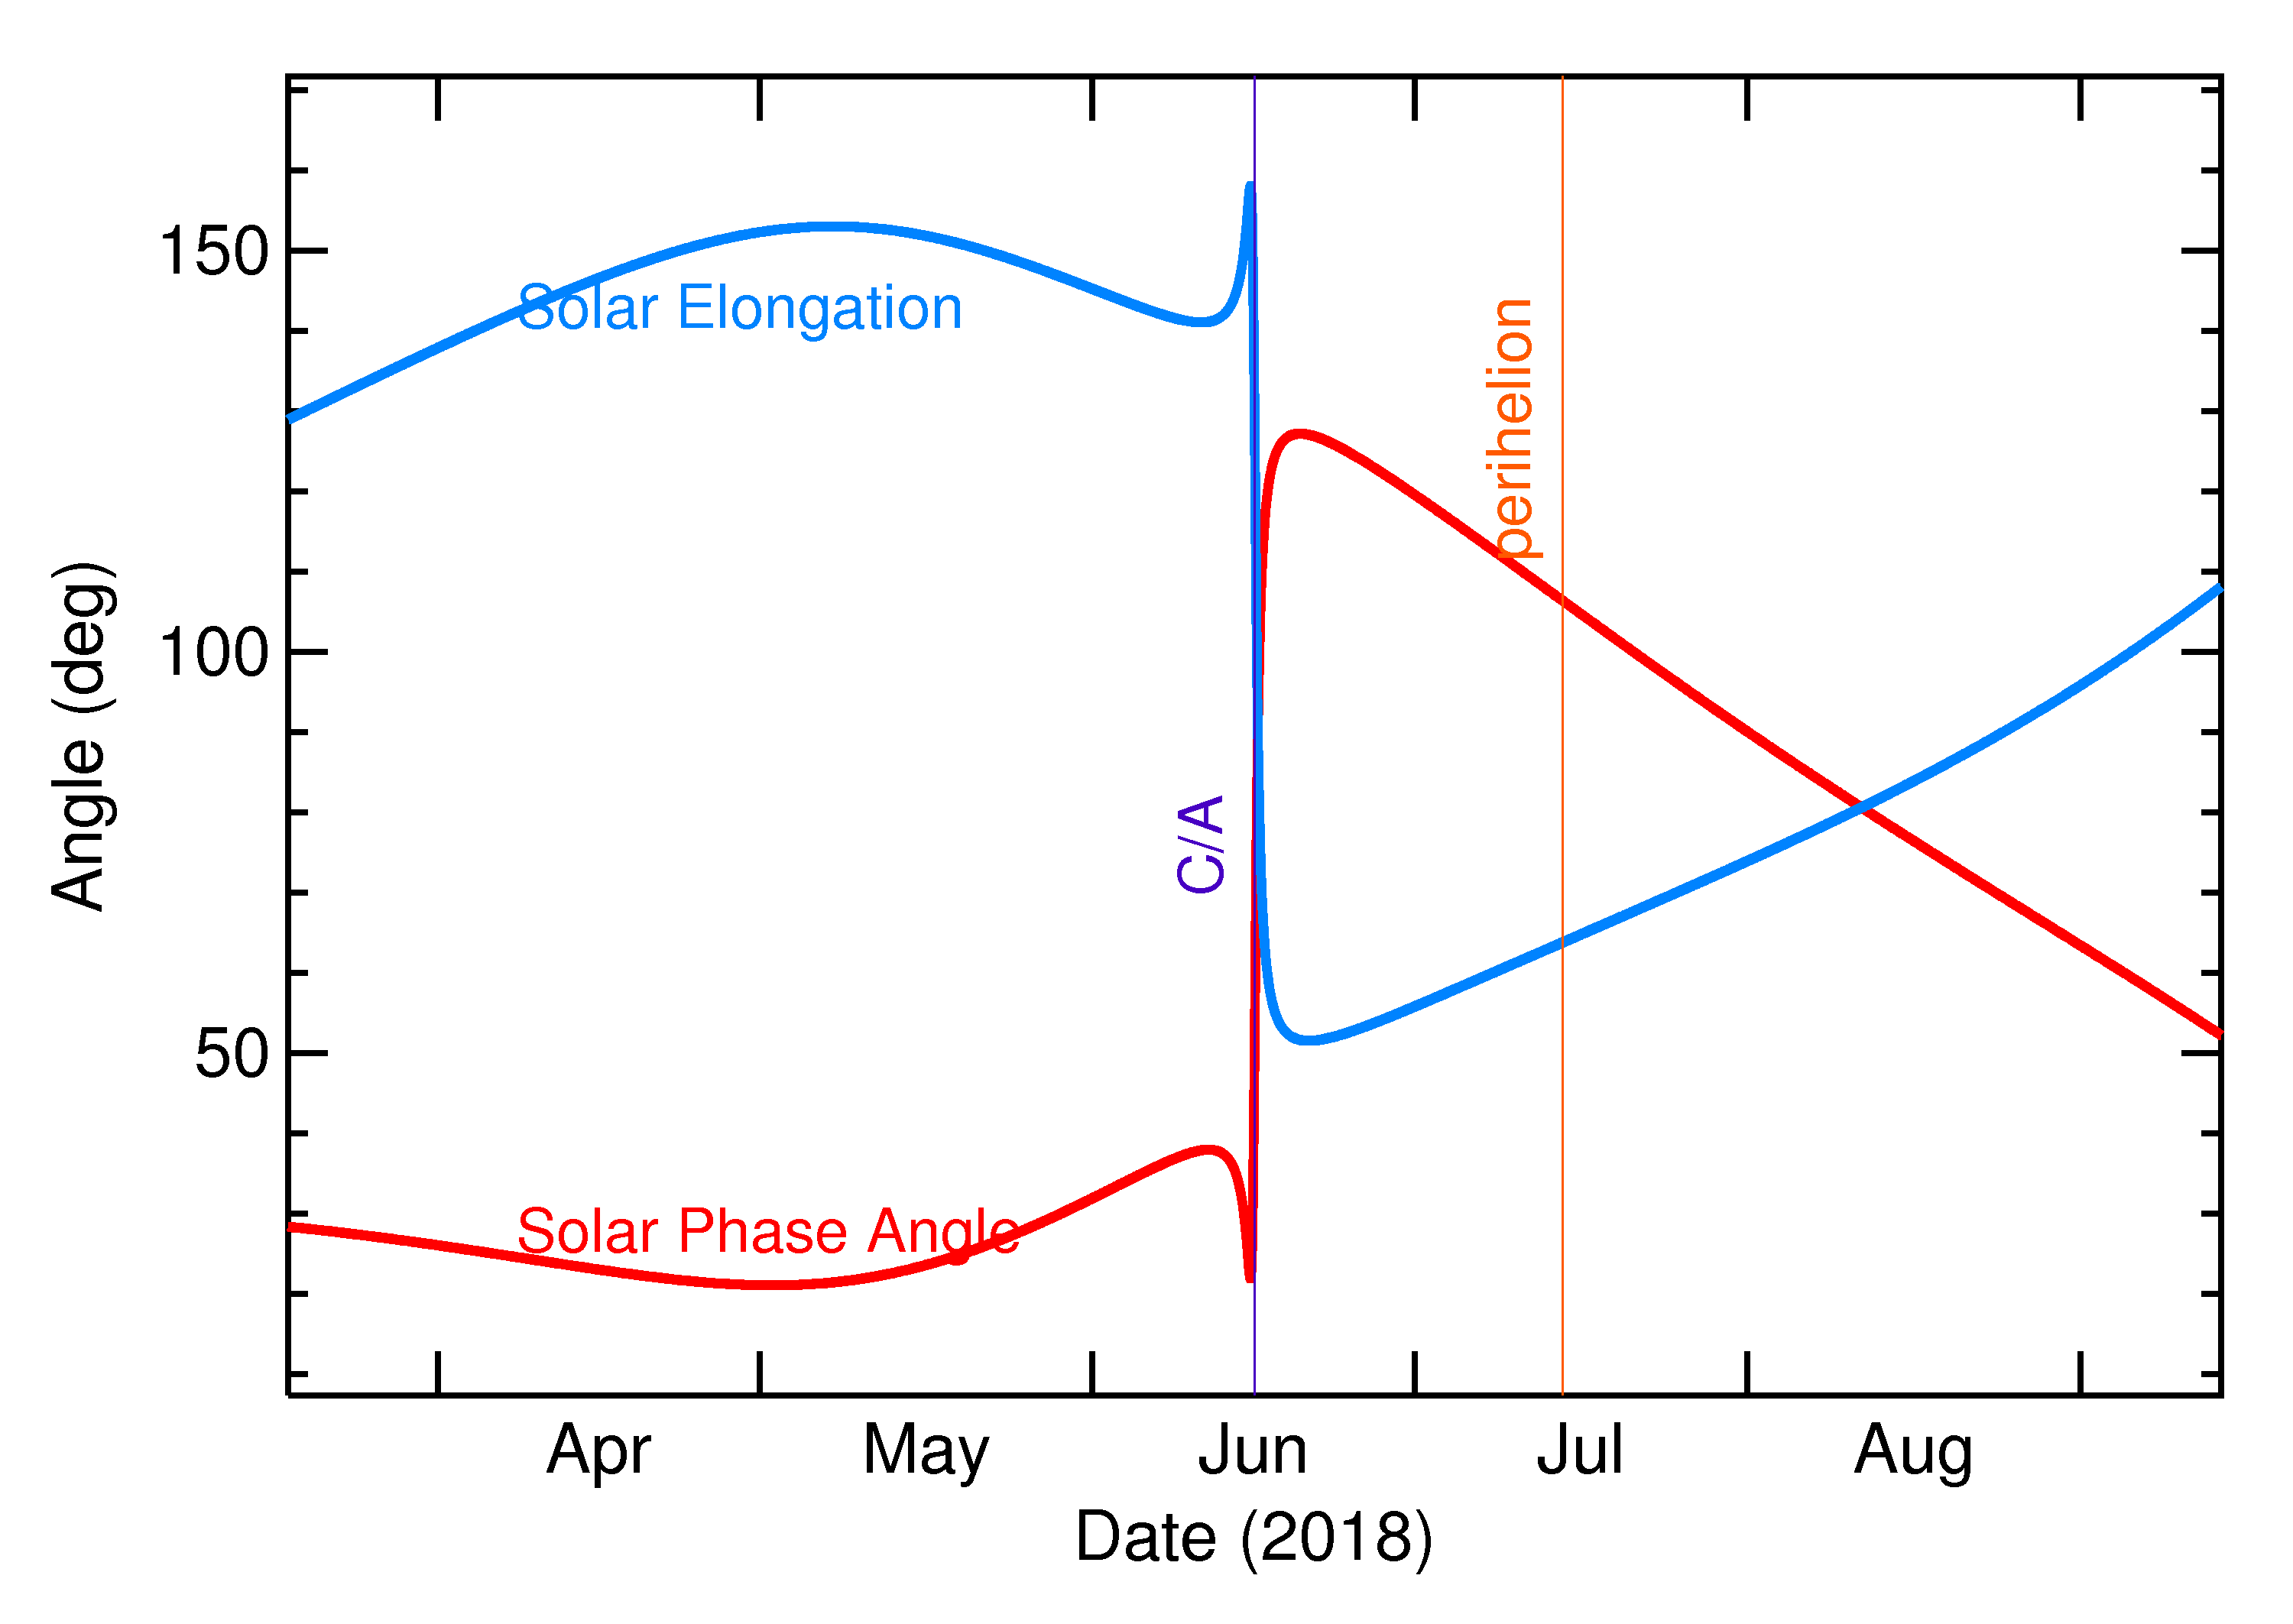 Solar Elongation and Solar Phase Angle of 2018 LV3 in the months around closest approach